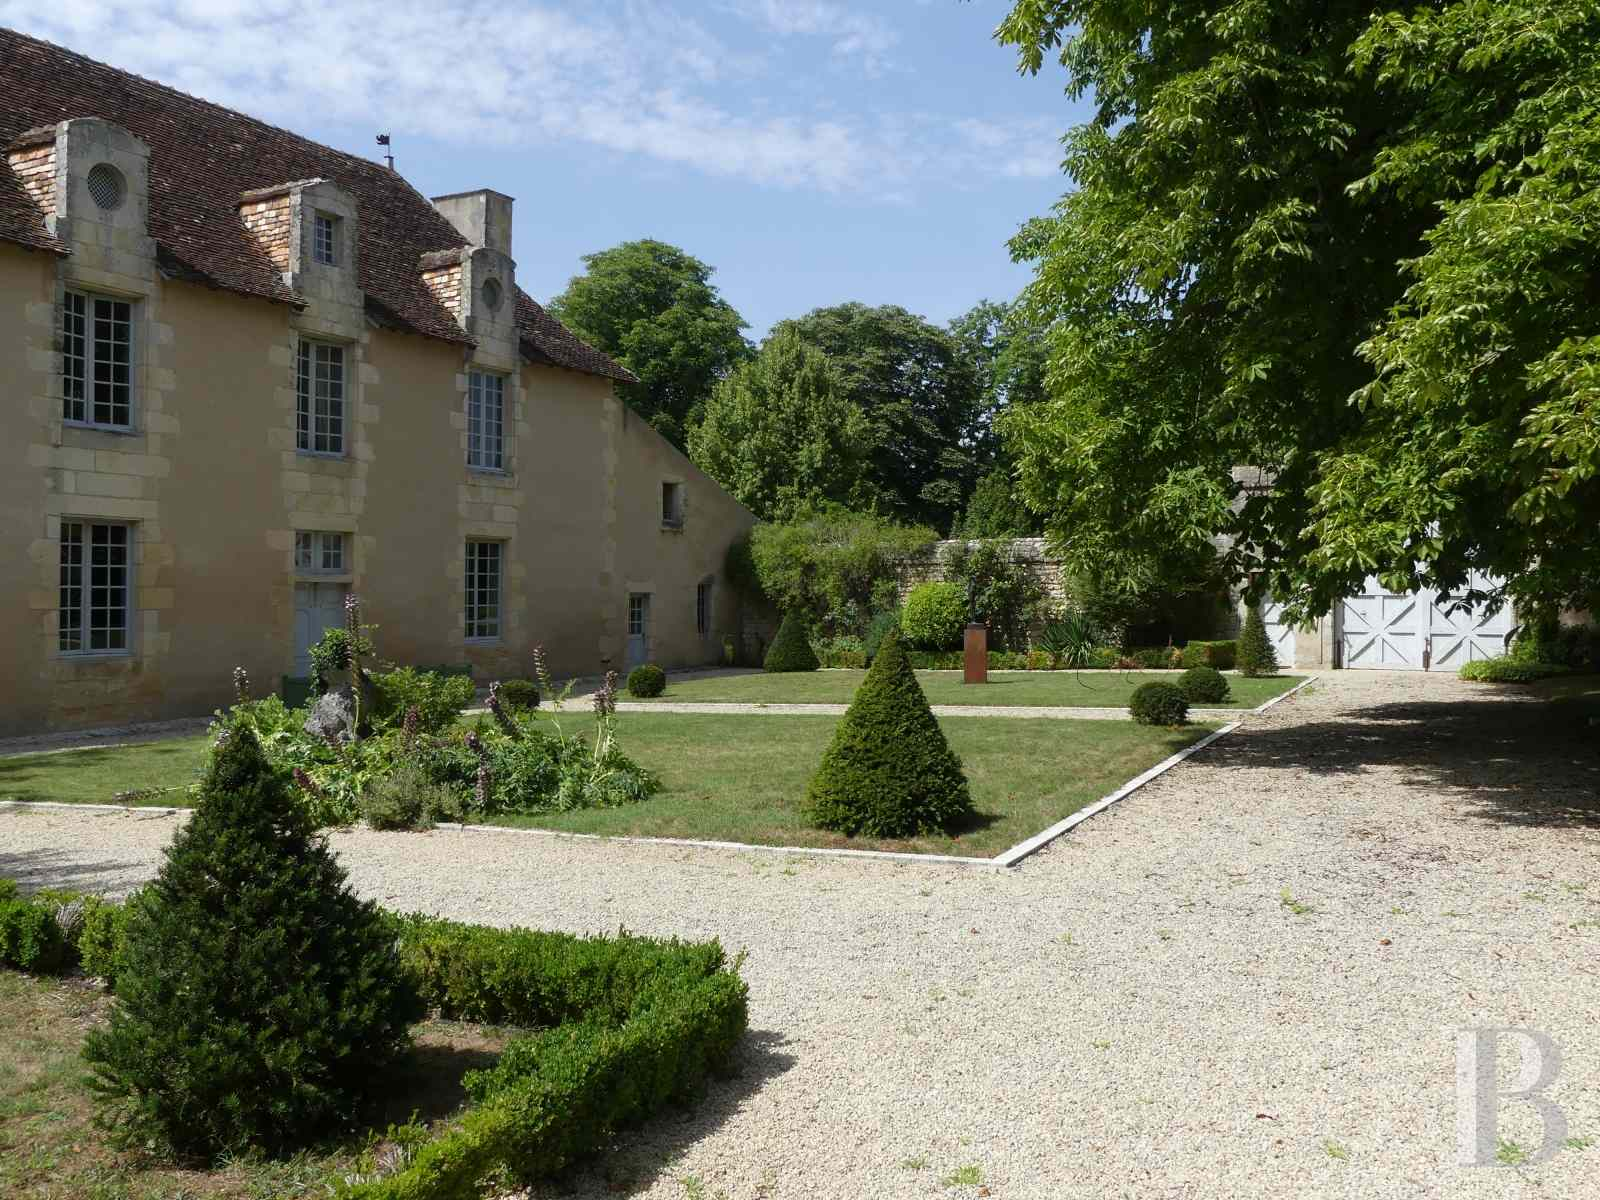 France mansions for sale poitou charentes poitiers estate - 1 zoom